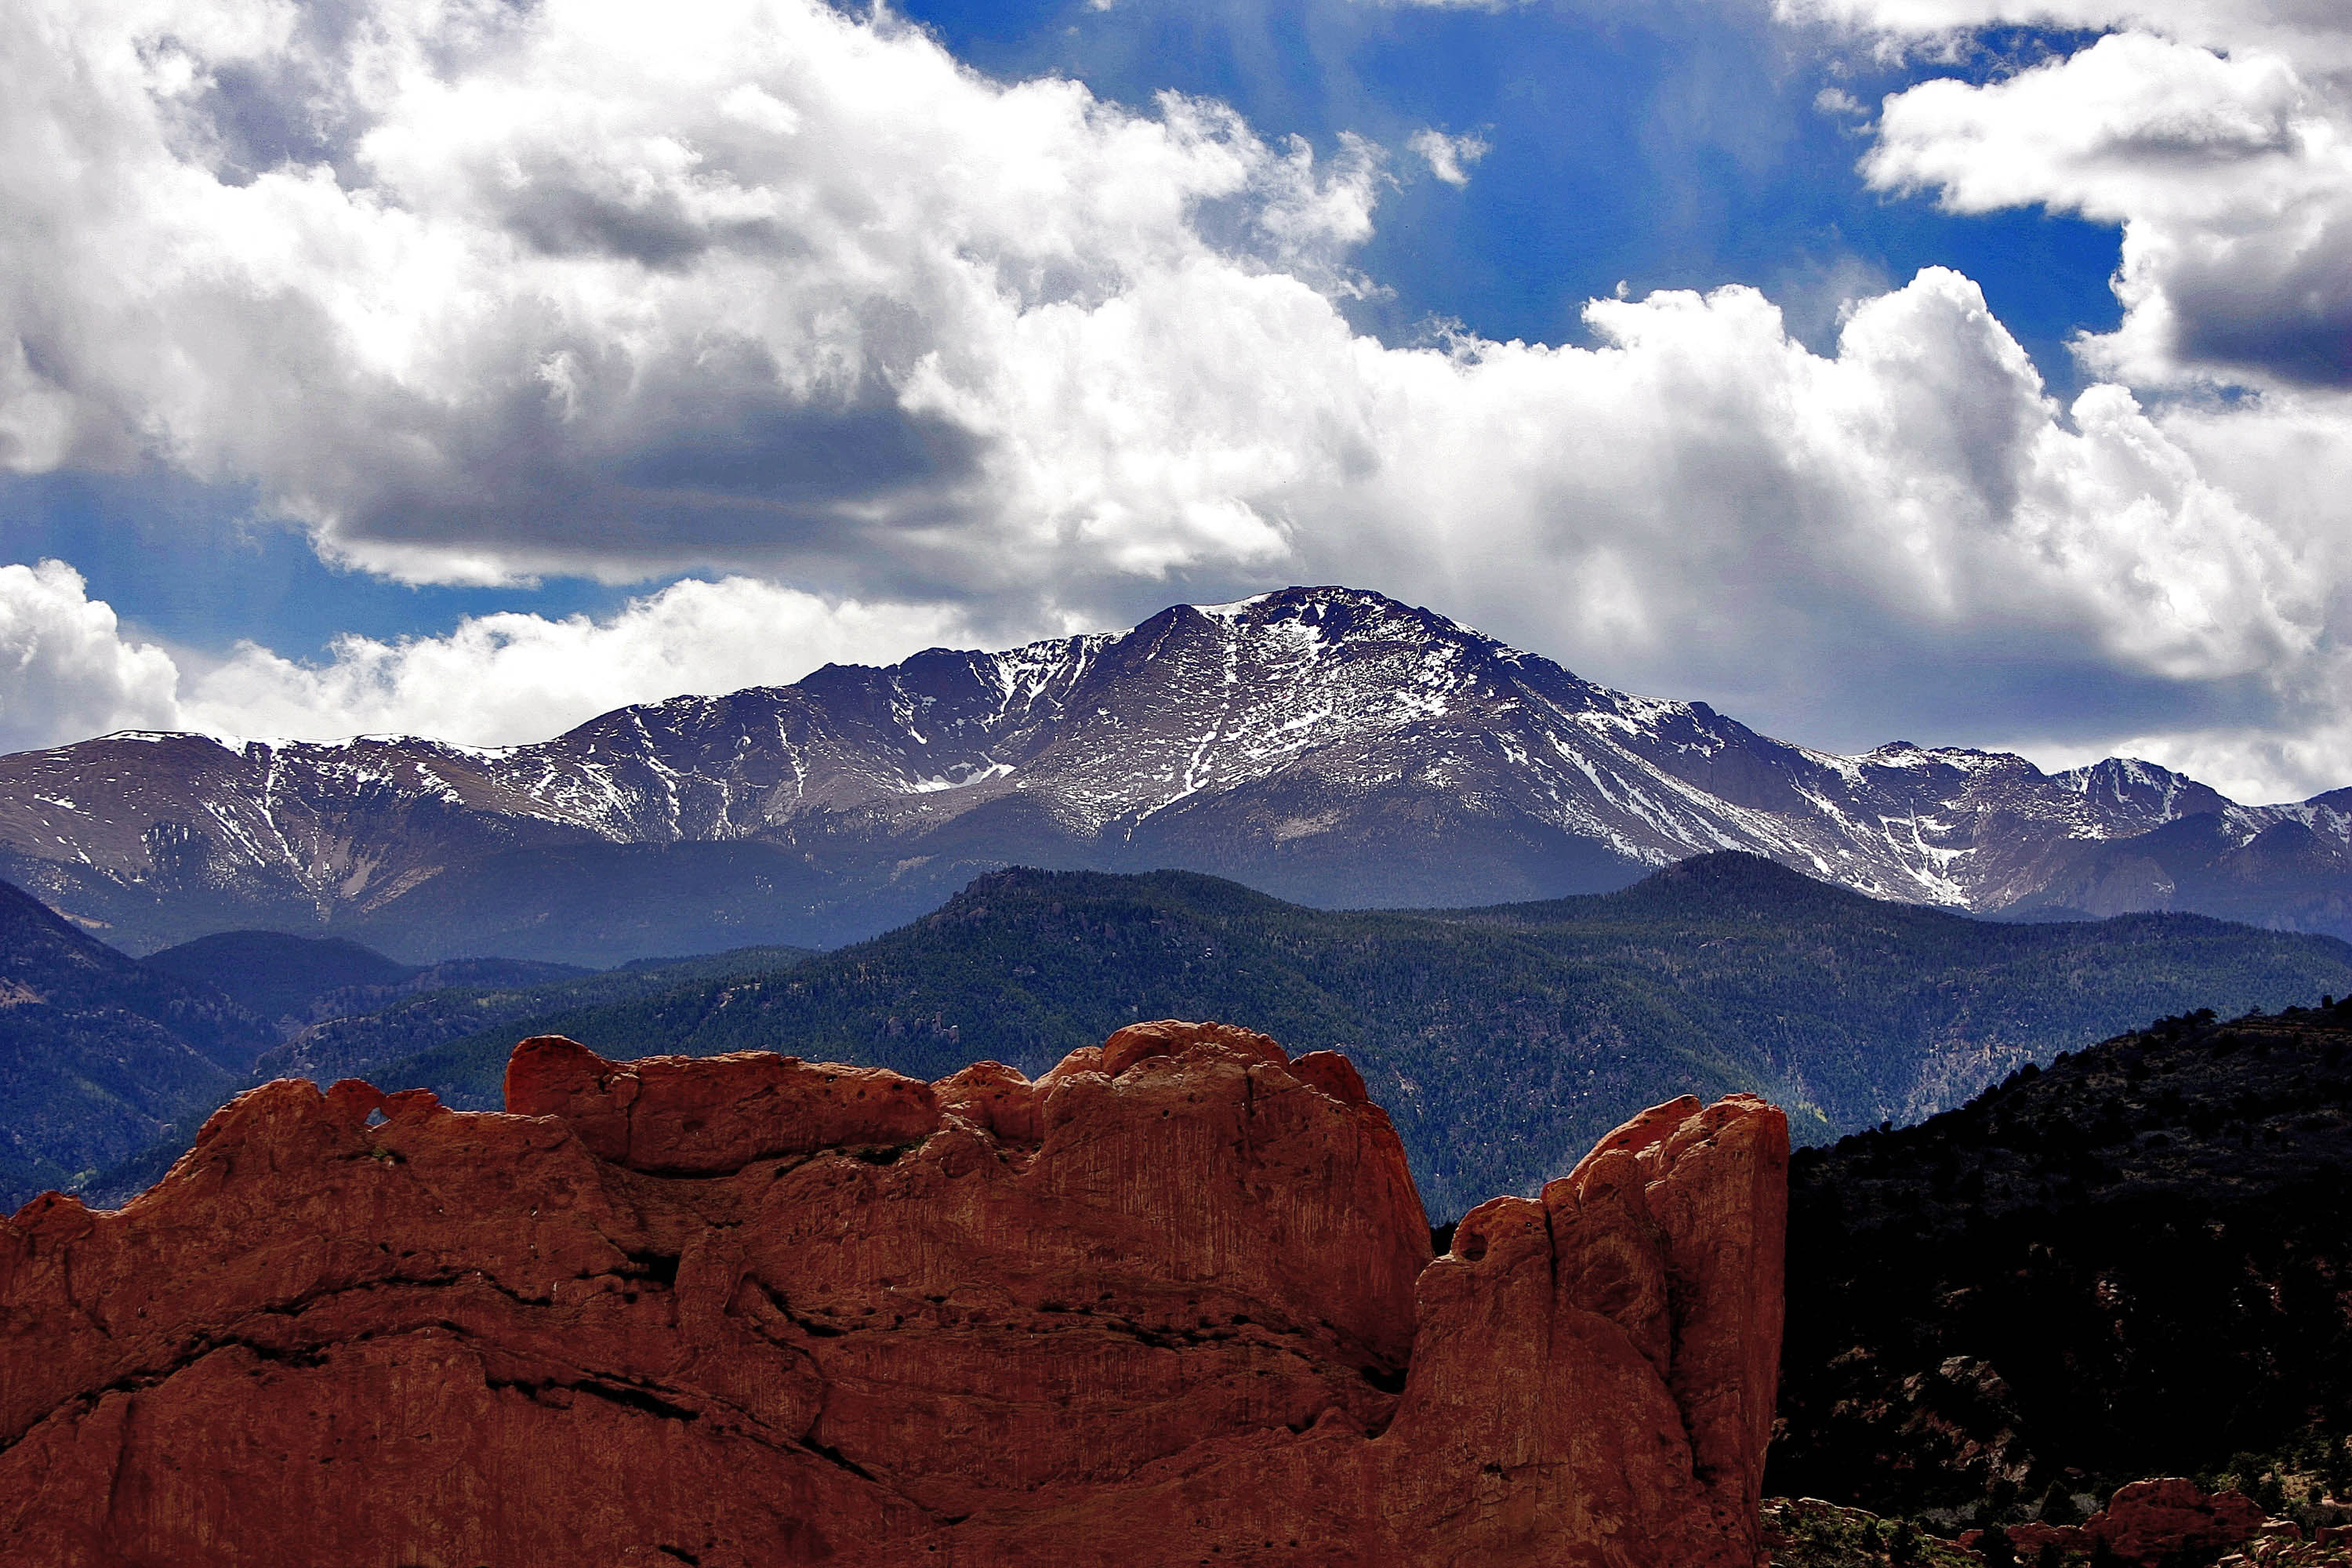 <p>Thesun breaks through the clouds to highlight the summit of Pikes Peak in Colorado Springs.</p>